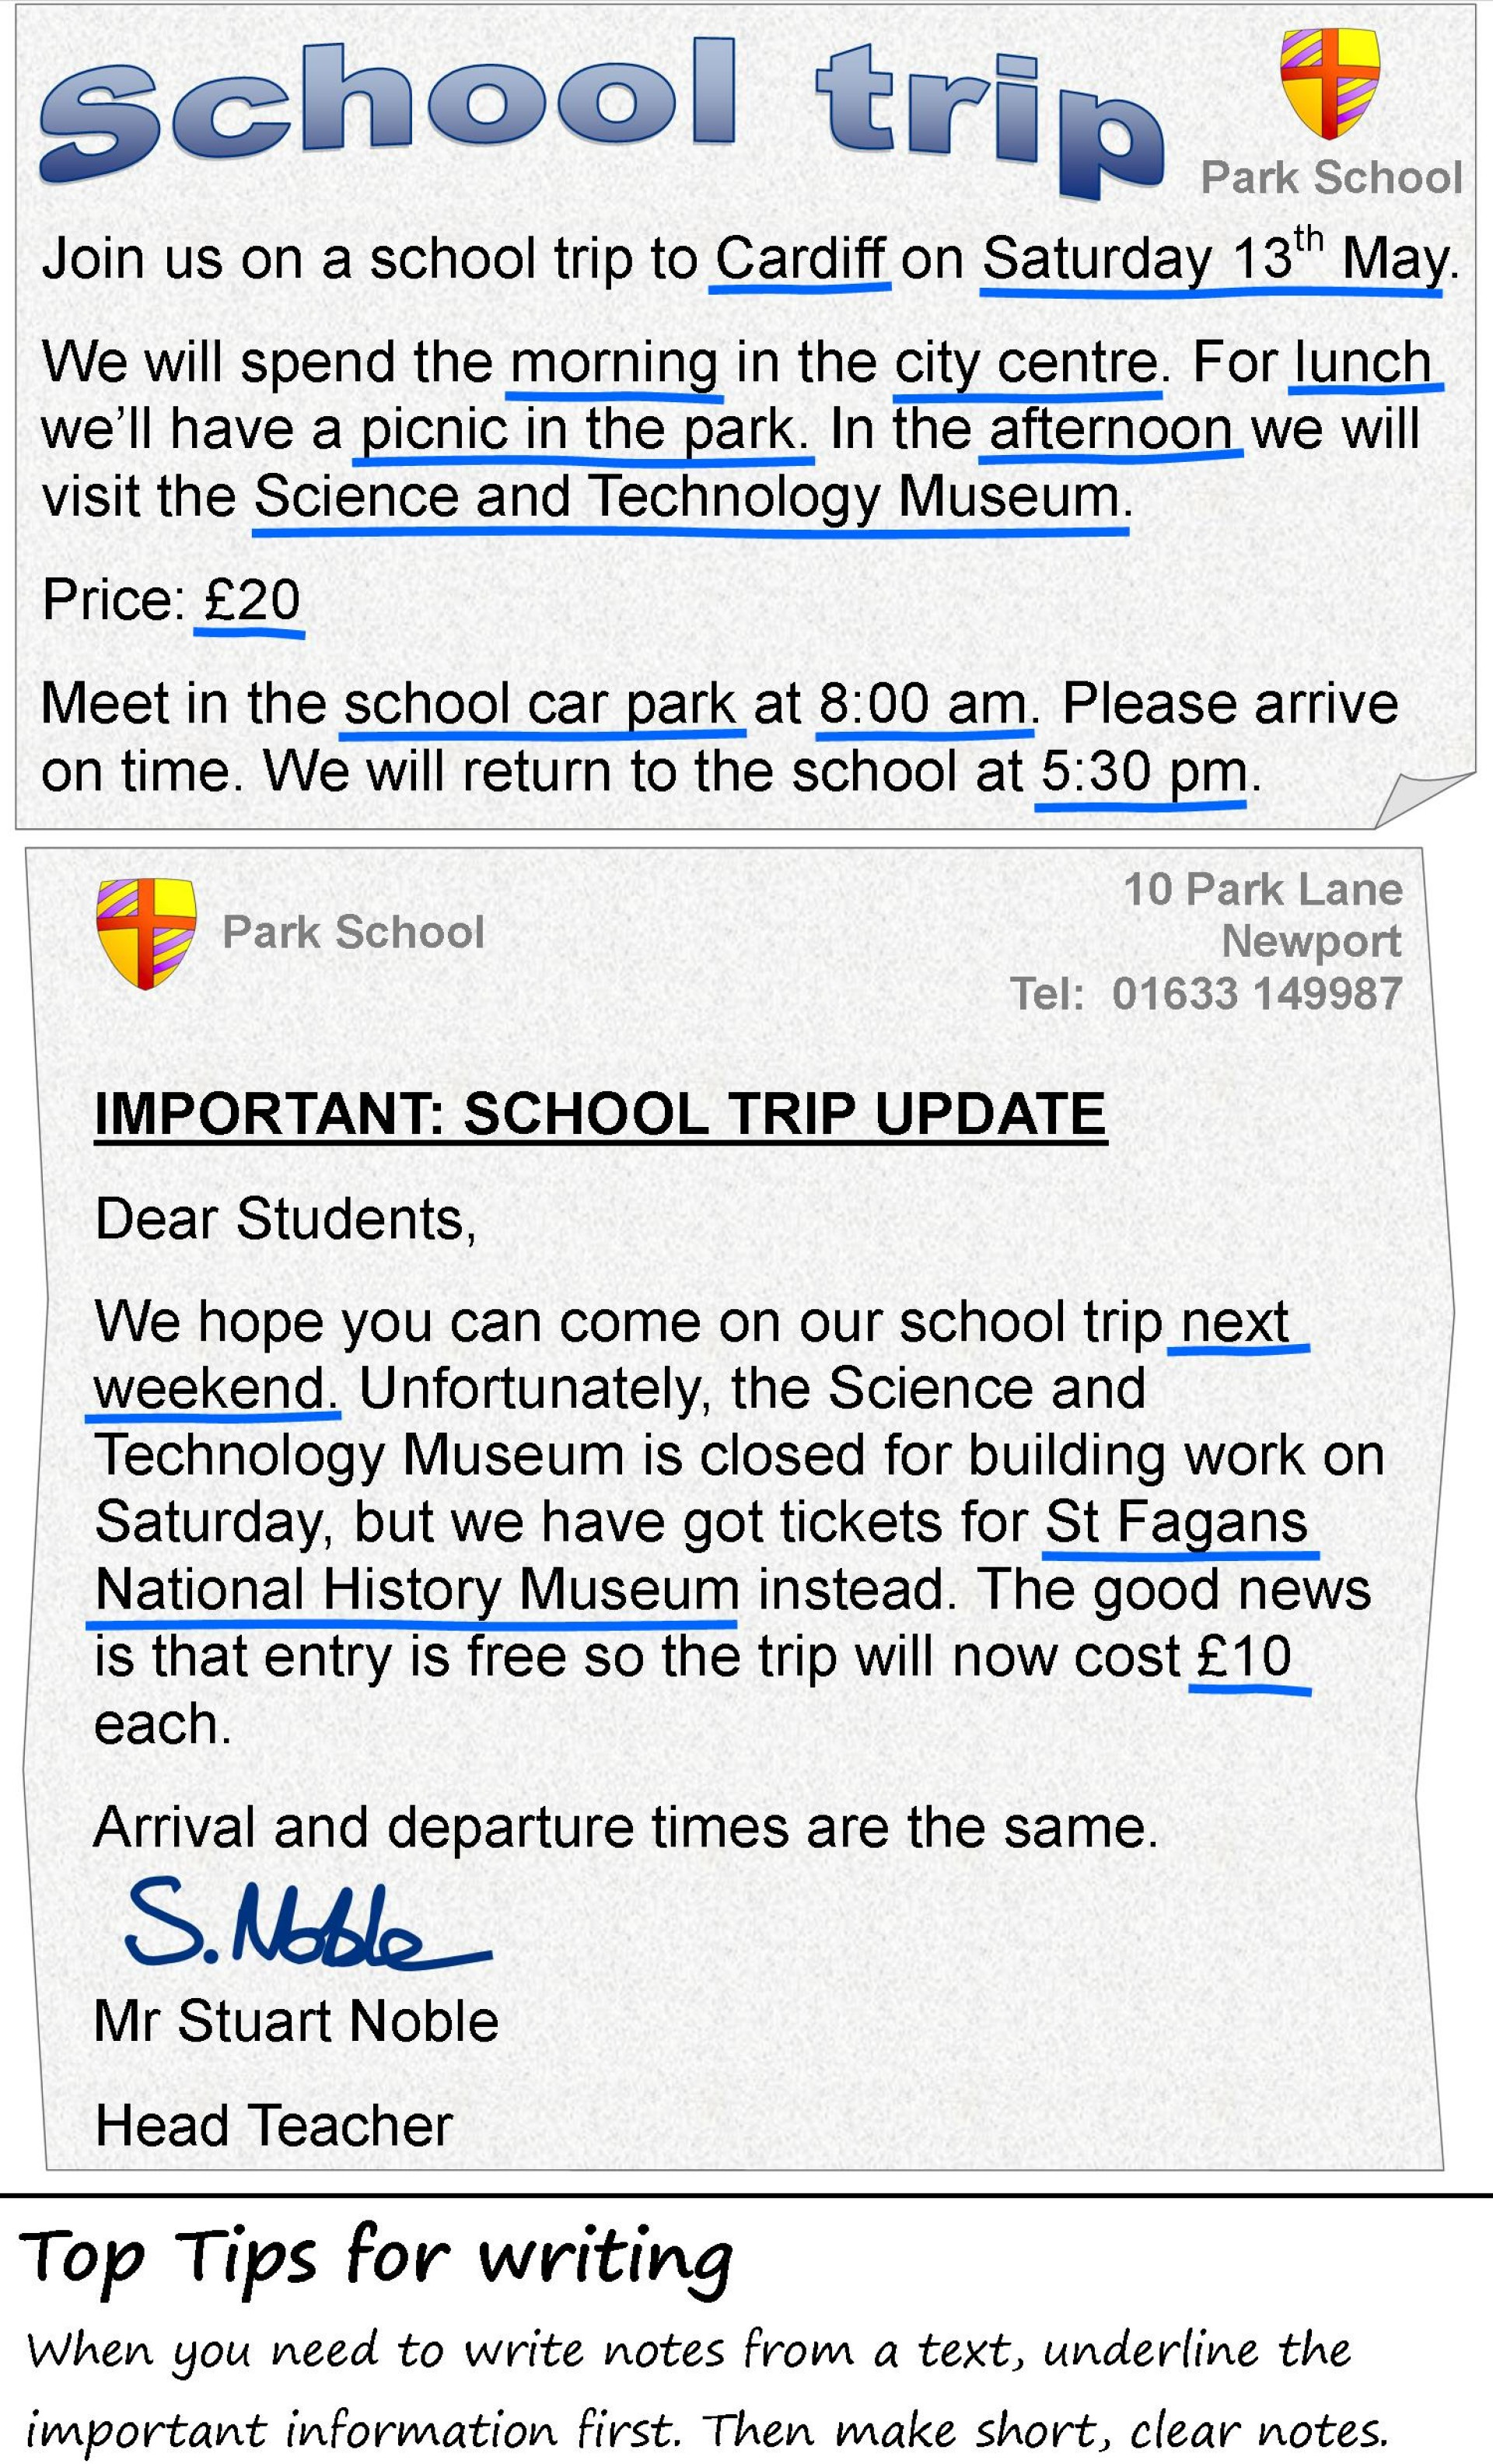 009 The School Trip 4 Essay Example My Favourite Newspaper In Striking English 1920